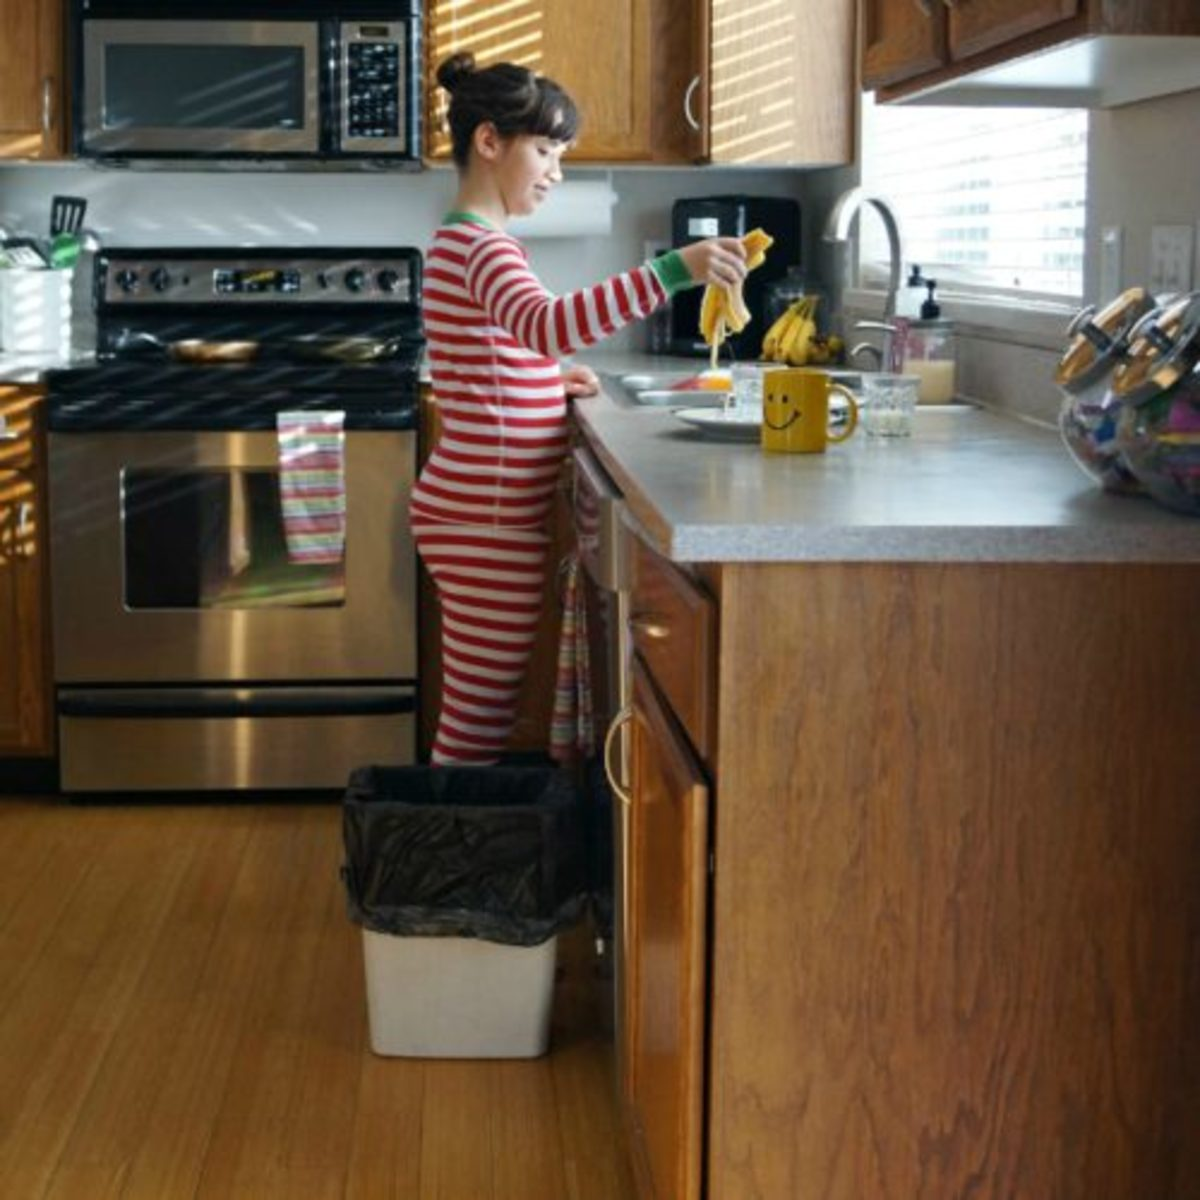 5 Reminders for Raising Helpful Kids in the Kitchen1